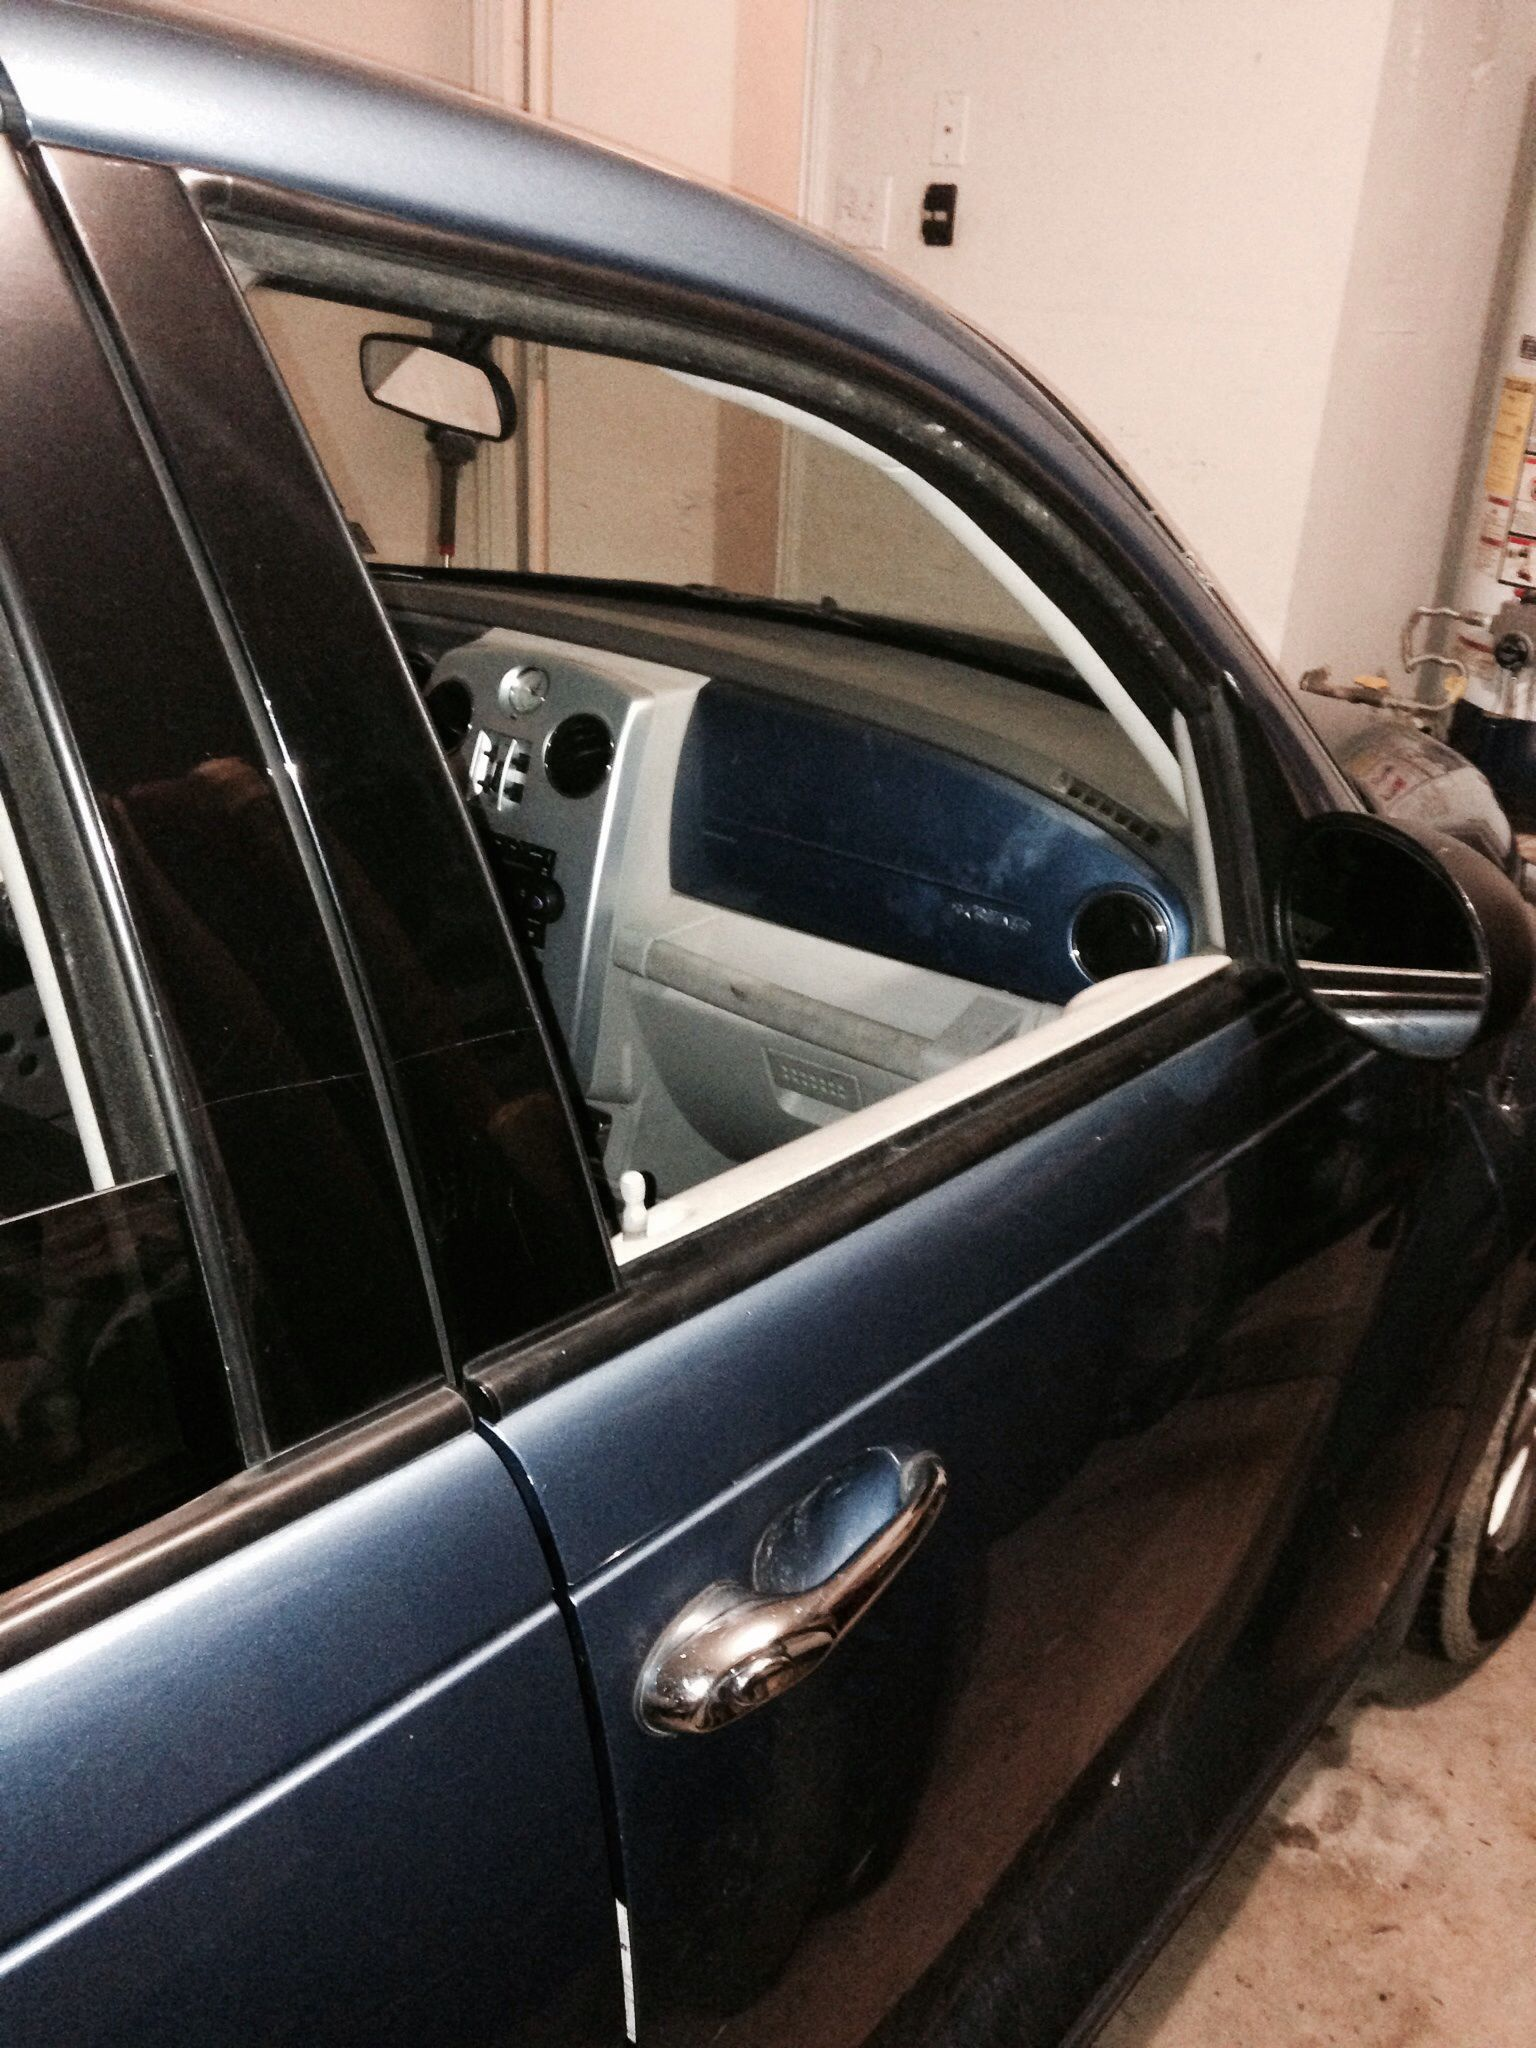 Chrysler Windshield Replacement Prices Local Auto Glass Quotes 2015 200 Tinted Windows 2007 Pt Cruiser 4 Door Hatchback Front Passengers Side